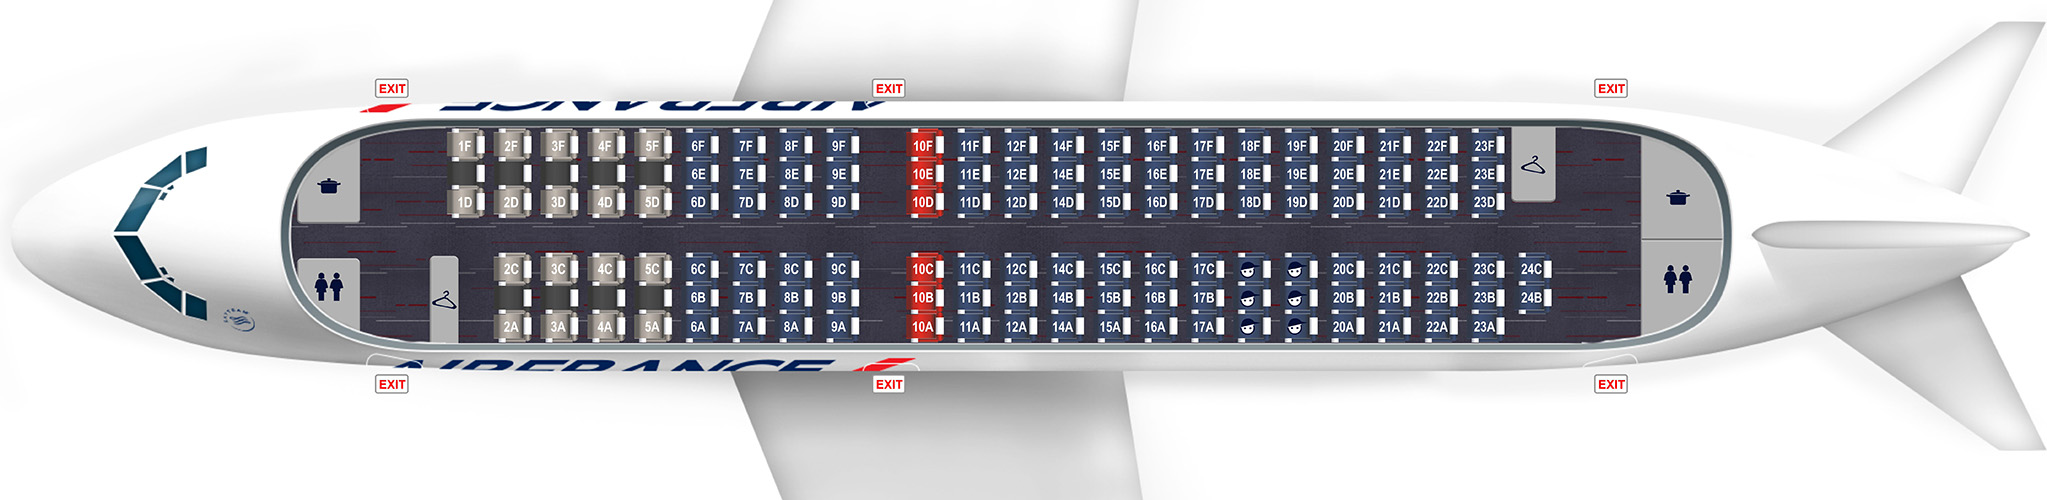 Plan a318 131 si ges for Plan de cabine boeing 777 200 air france